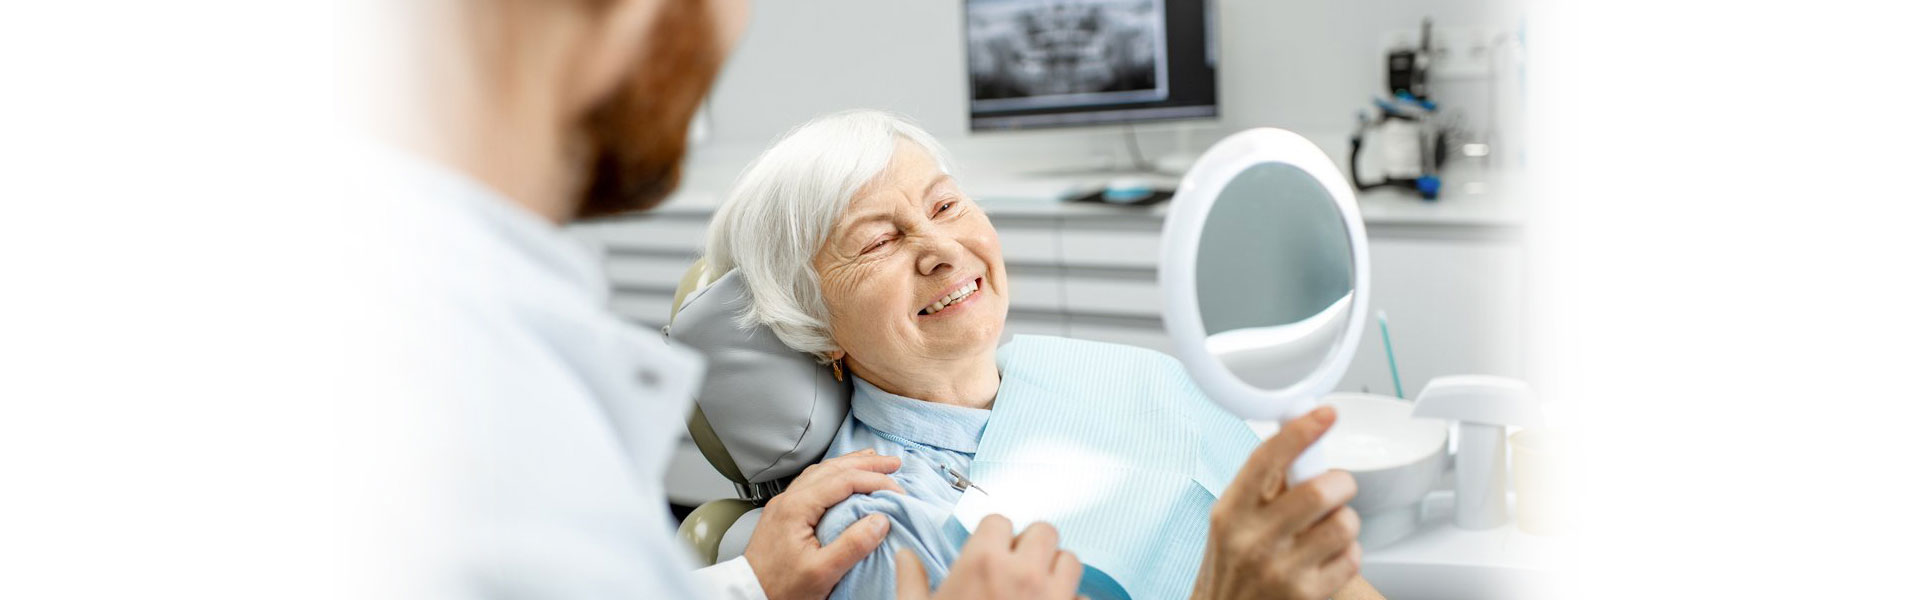 Tooth Extractions in Etobicoke, ON